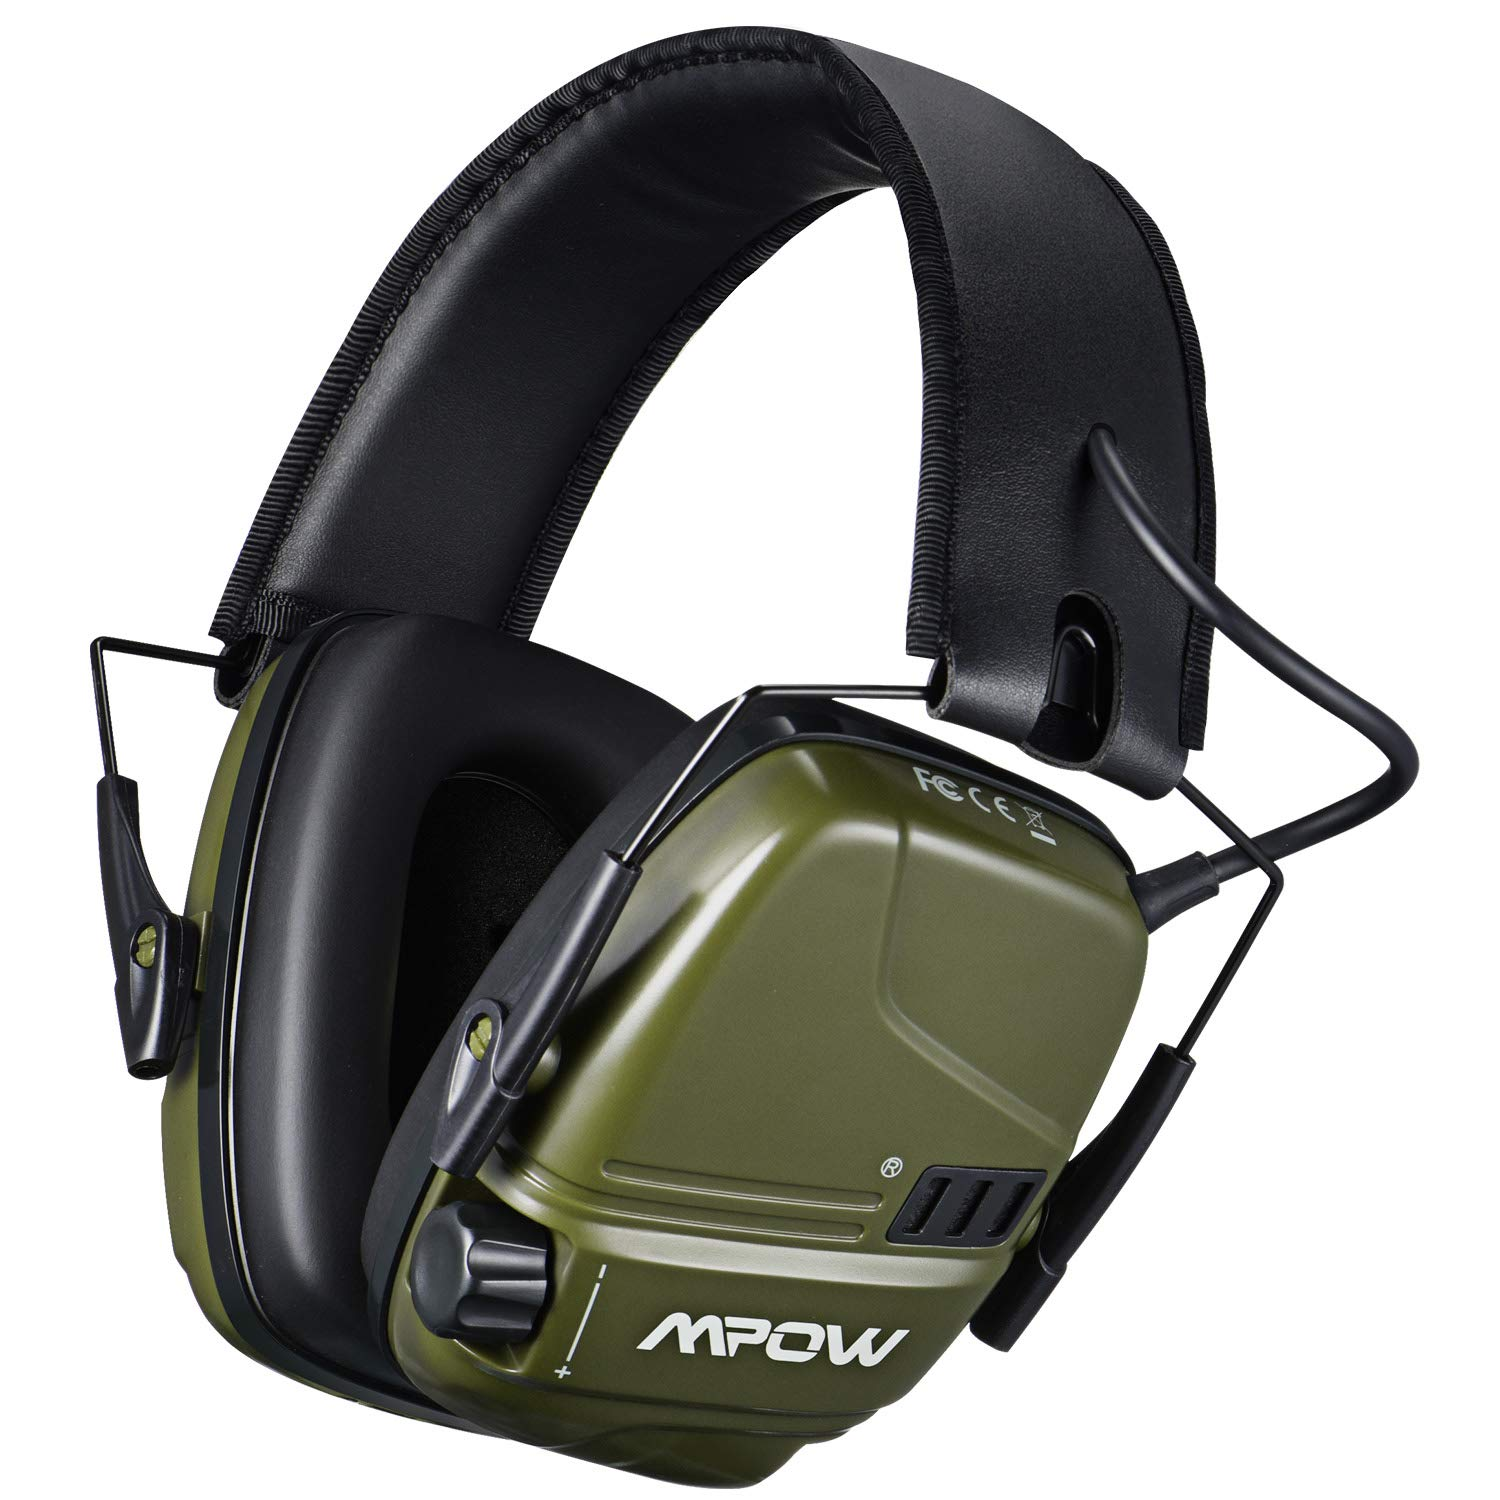 Mpow Electronic Shooting Earmuffs, Rechargeable Ear muffs 30Hrs Playtime, NRR 22dB Ear Muffs Noise Reduction Sound Amplification, Hearing Protection for Shooting, Hunting, Mowing, Woodworking- Green by Mpow